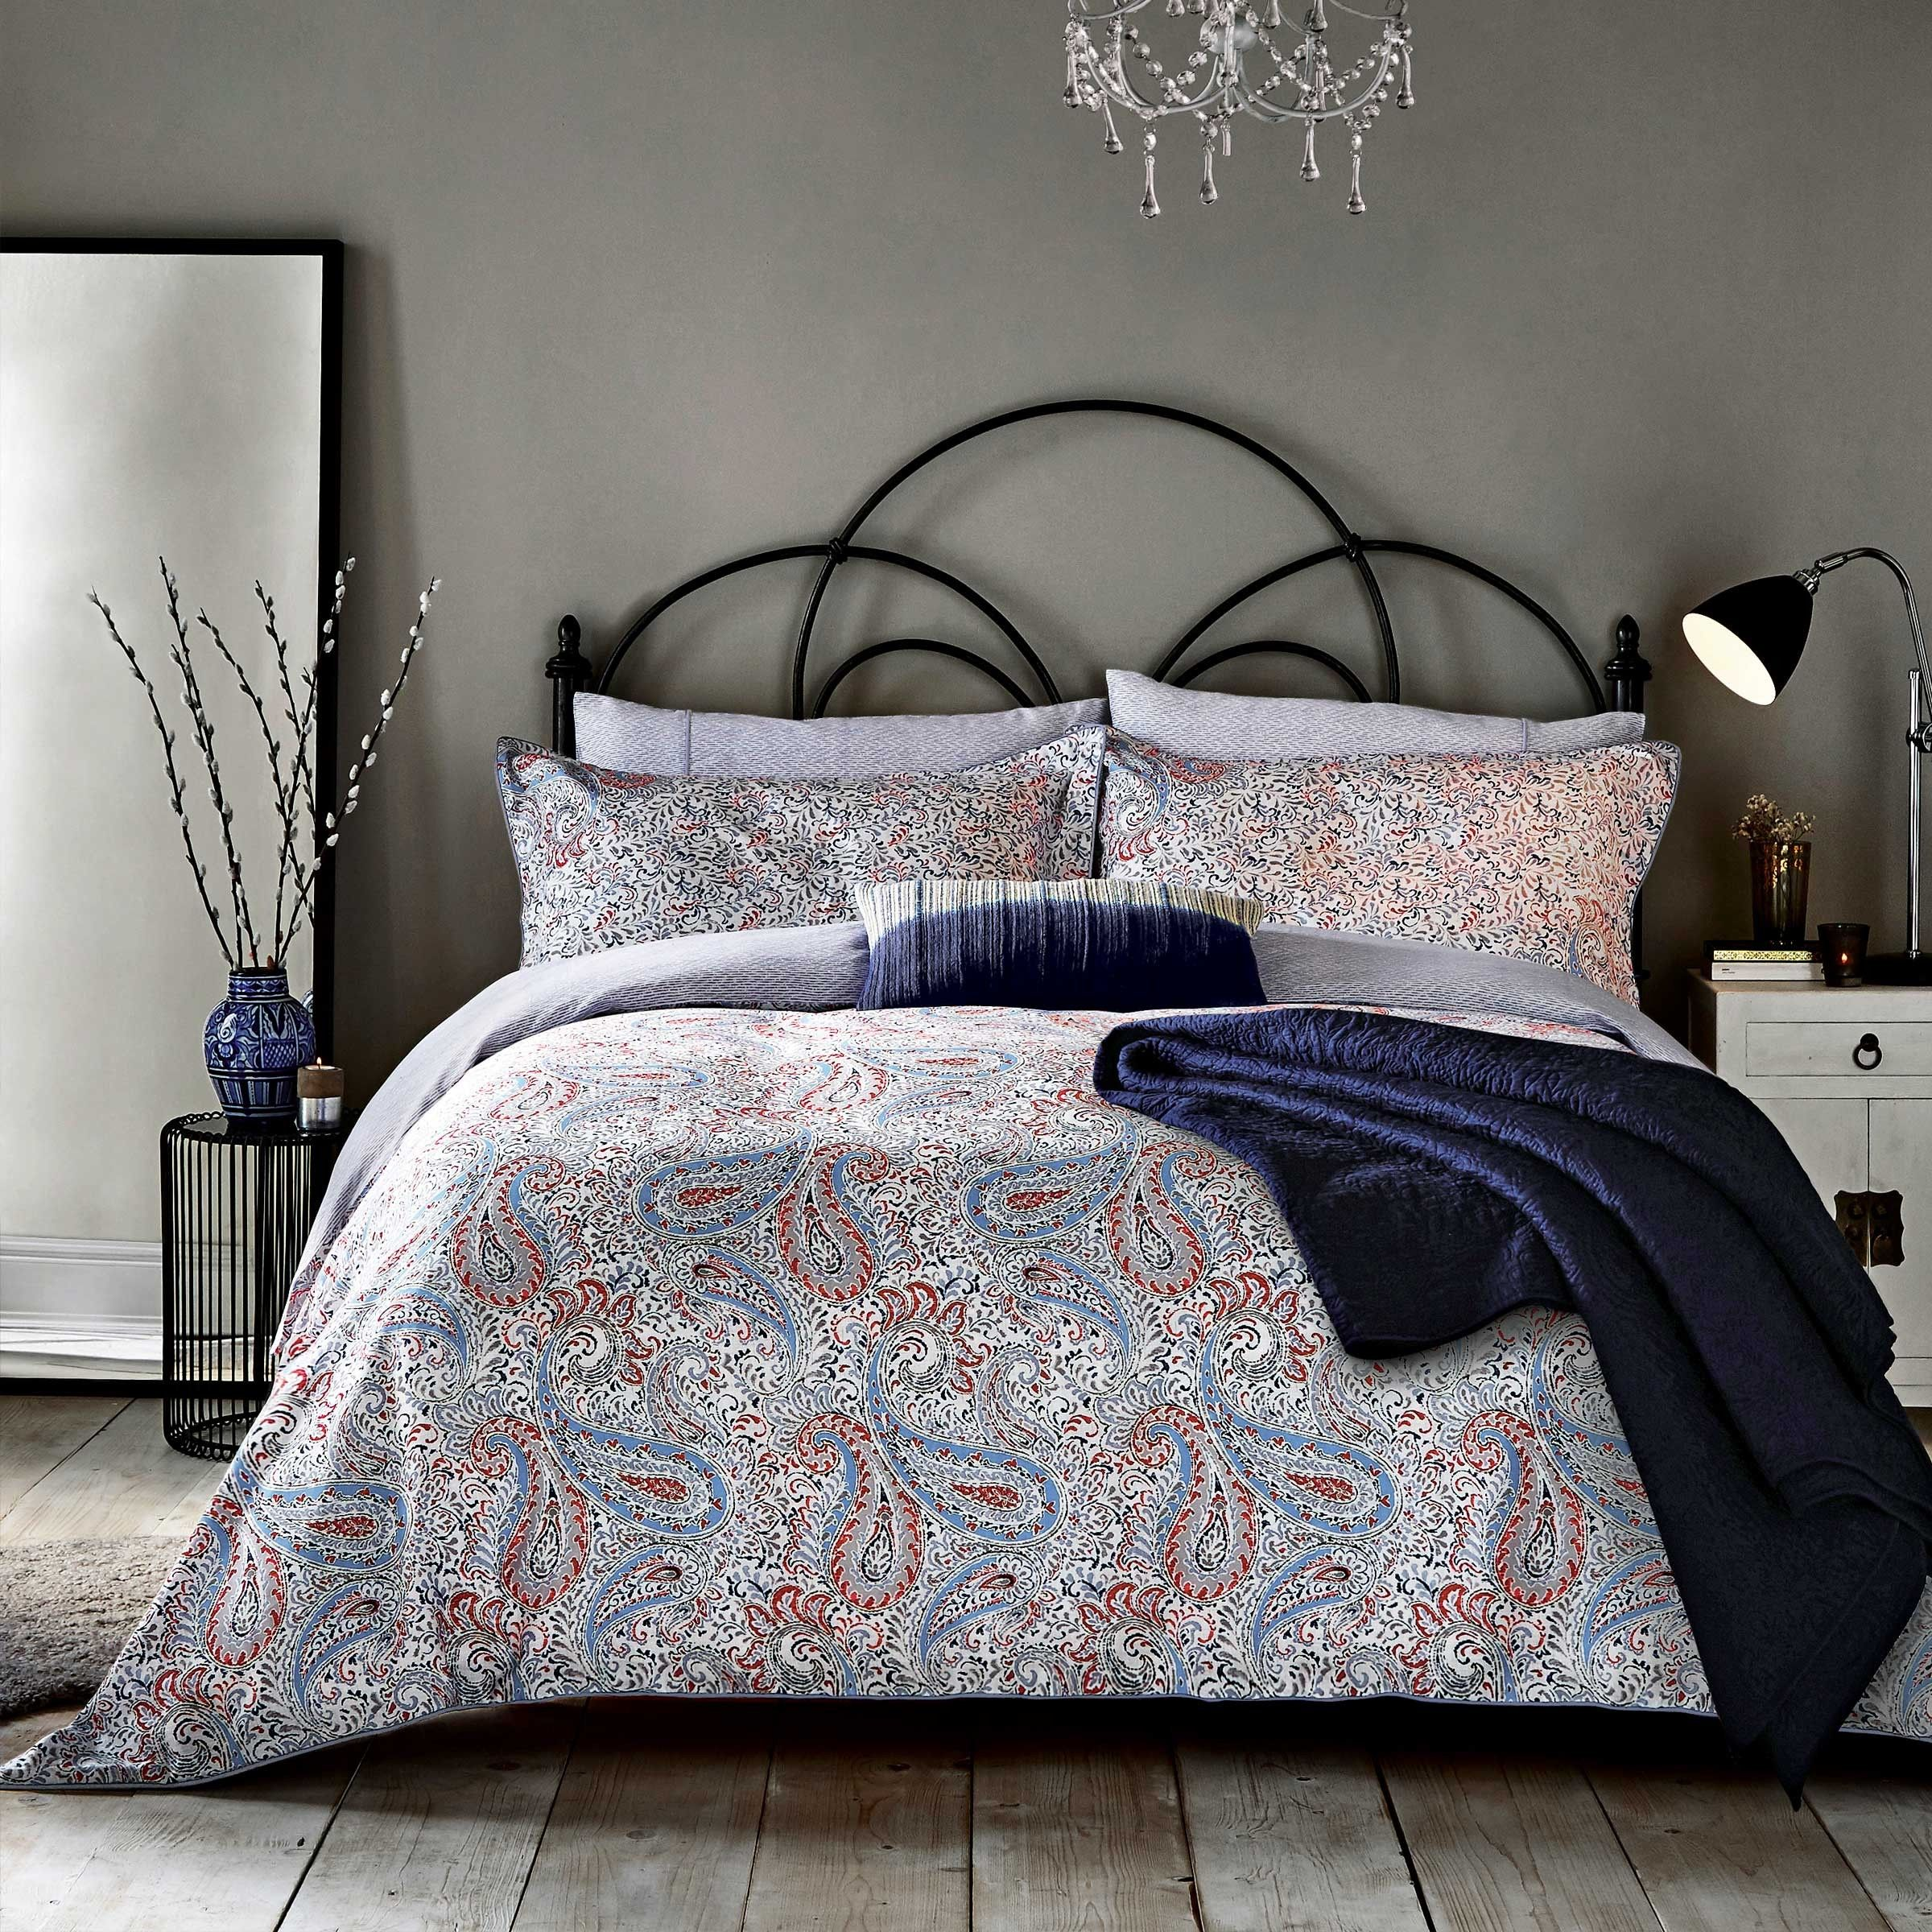 Patterned Bedding Unique Design Ideas